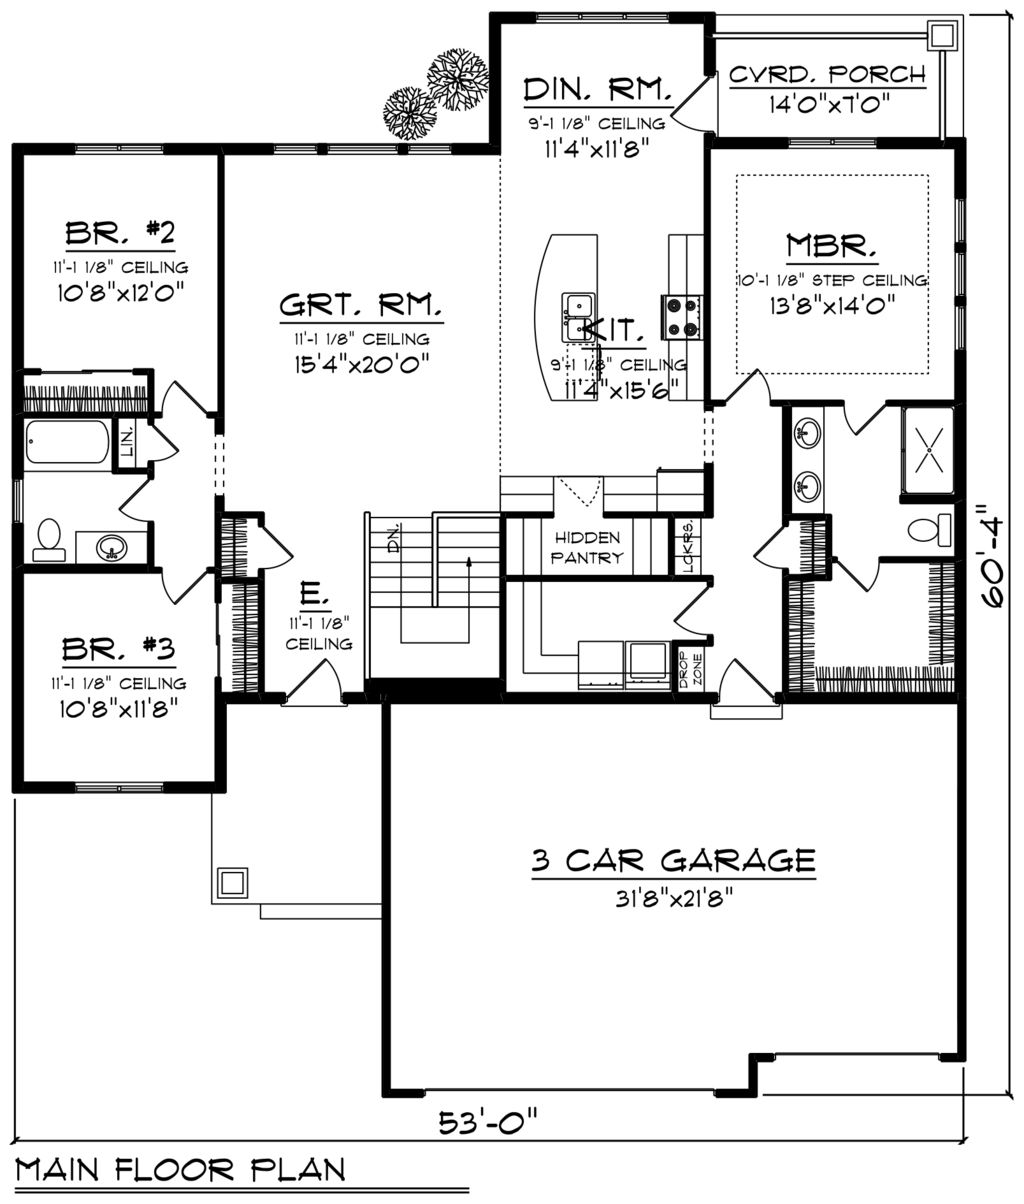 Ranch Style House Plan 3 Beds 2 Baths 1796 Sq Ft Plan 70 1243 Ranch Style House Plans Ranch House Plans Cottage Style House Plans